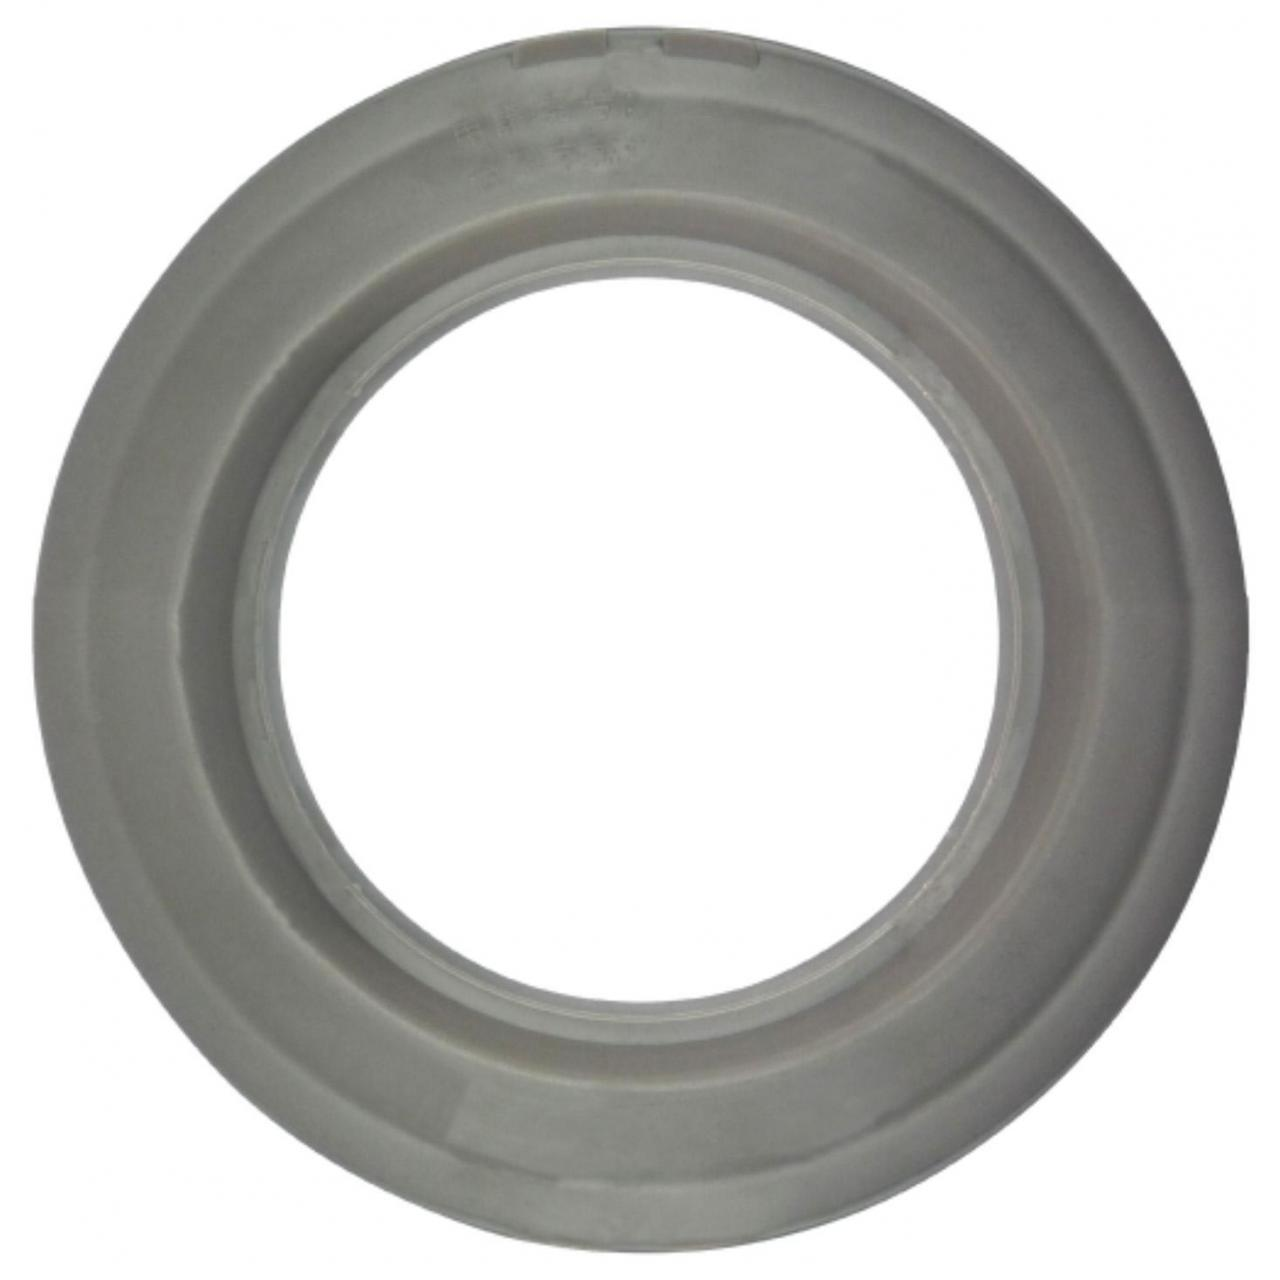 Oil guide plate series 240-No hole